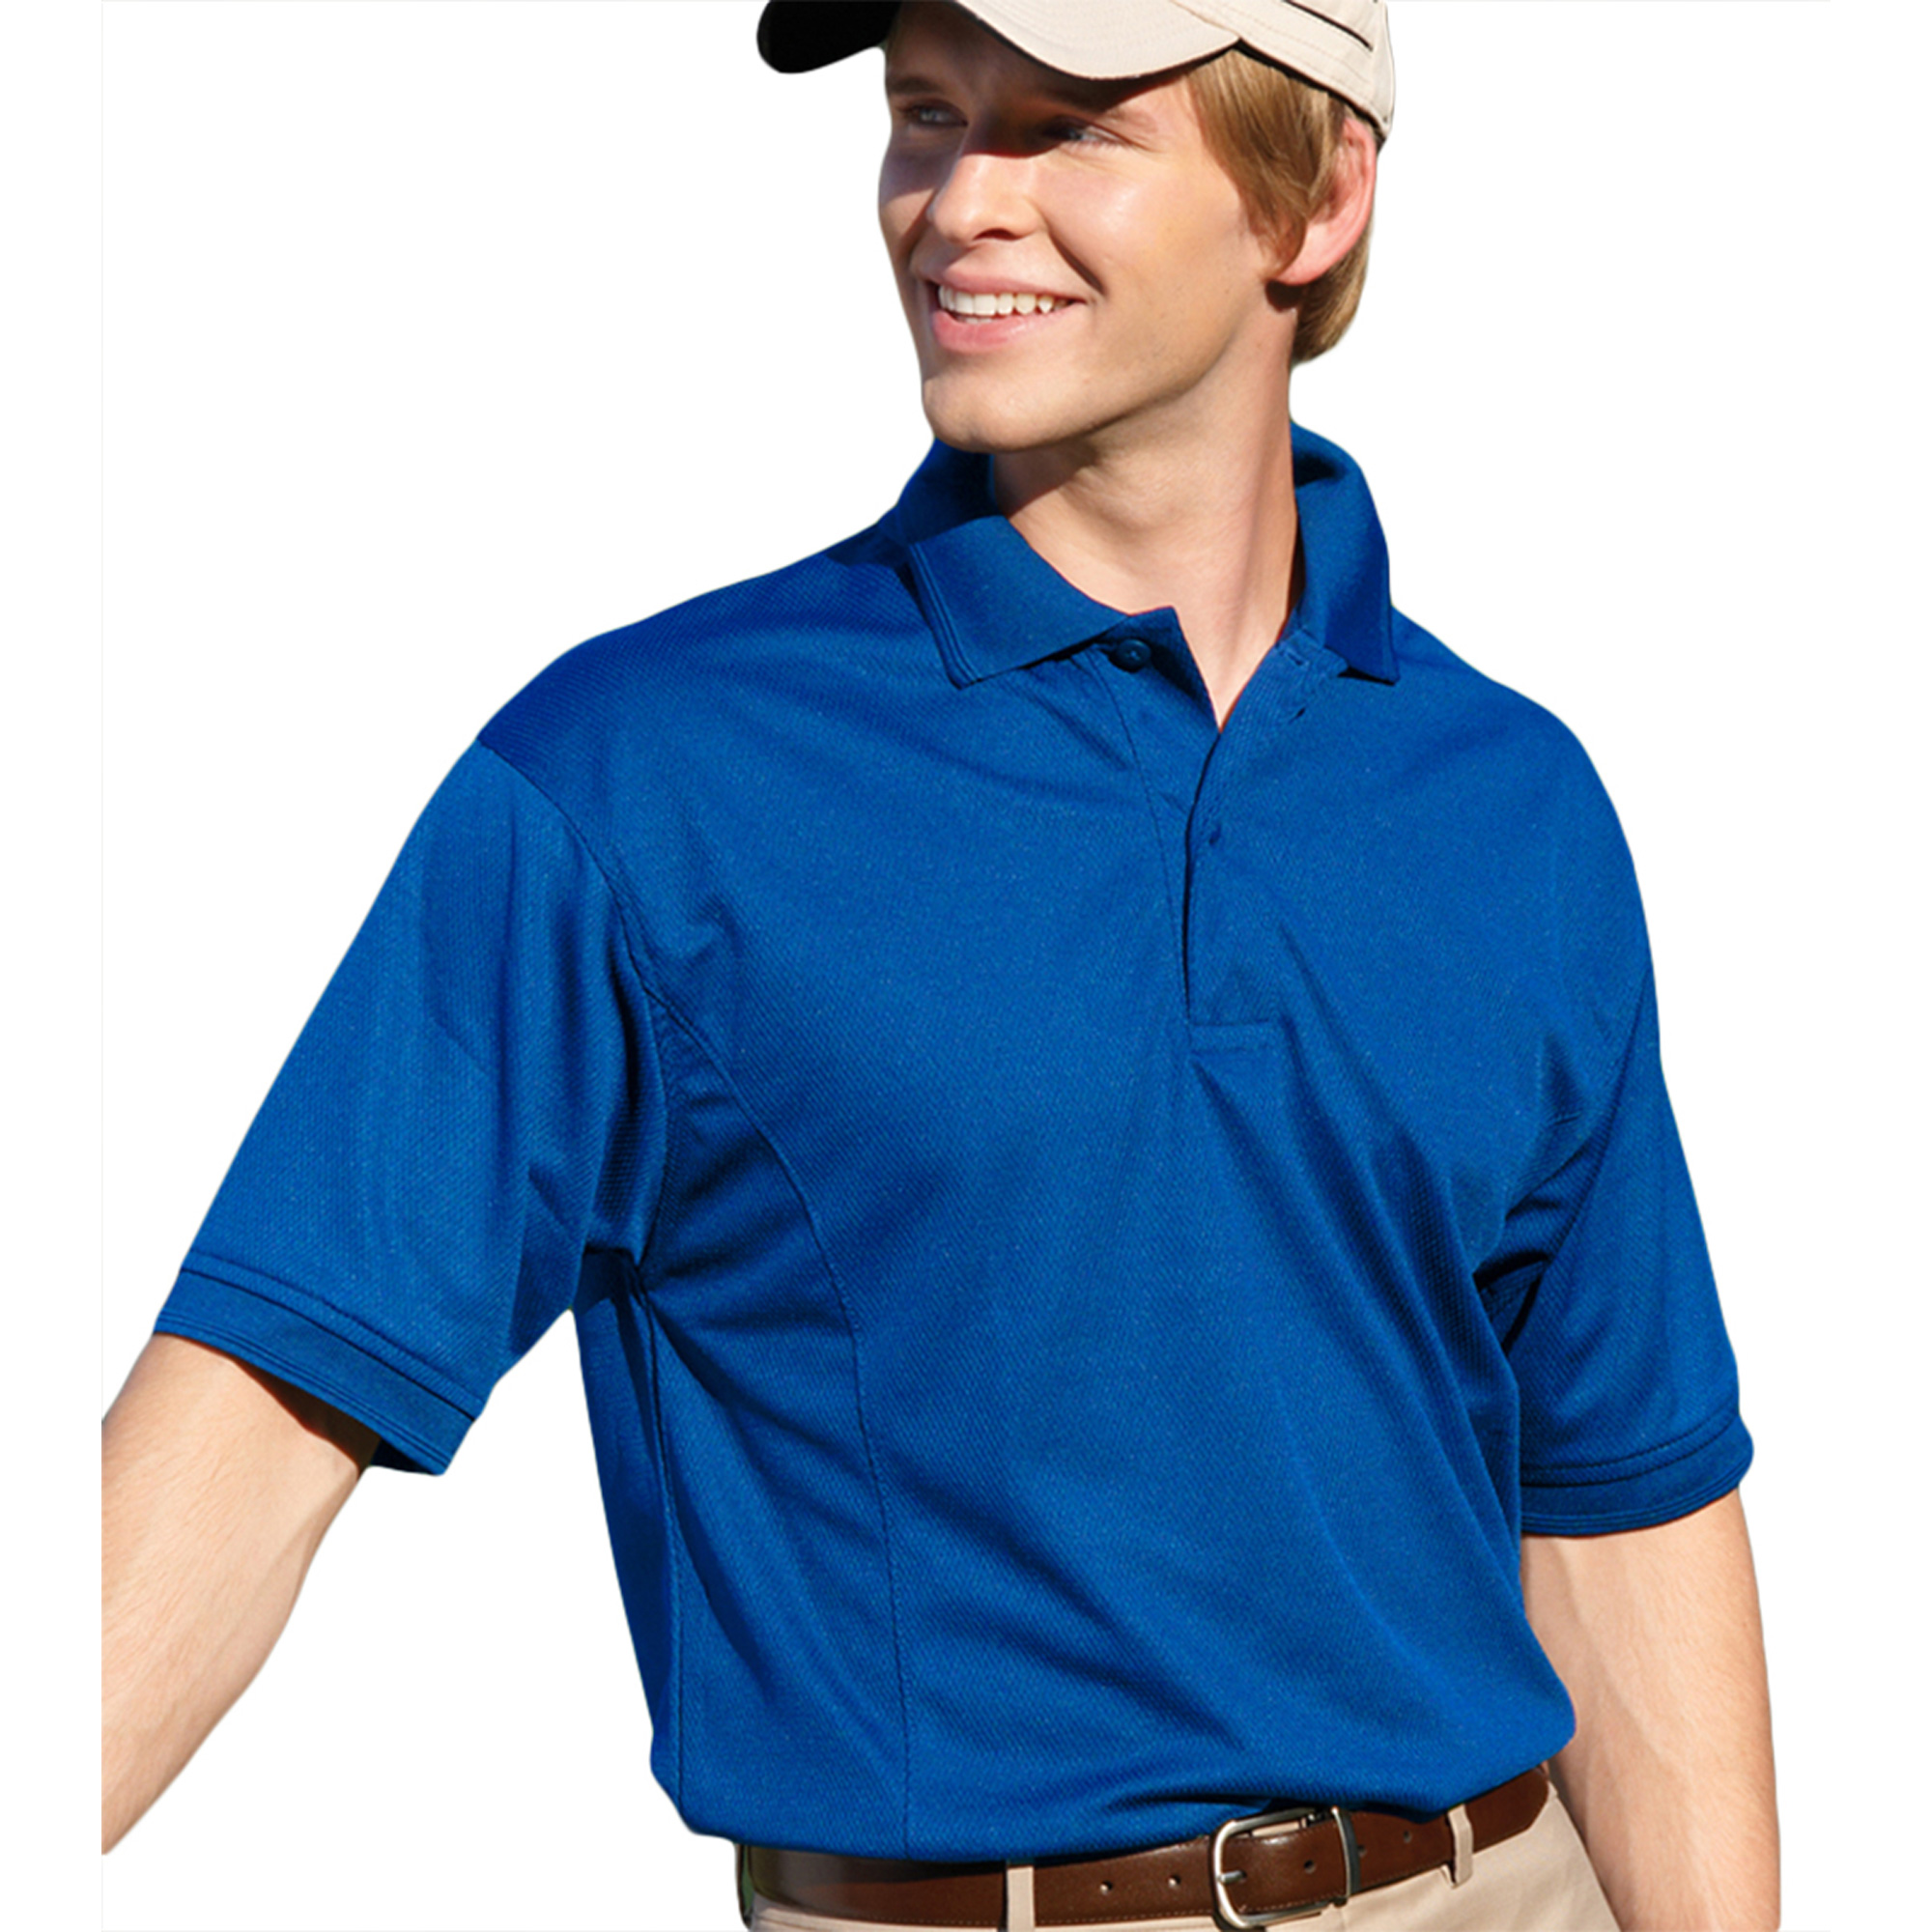 00820599181139 MENS PERFORMANCE GOLF SHIRT 2800 ROYAL 2XL